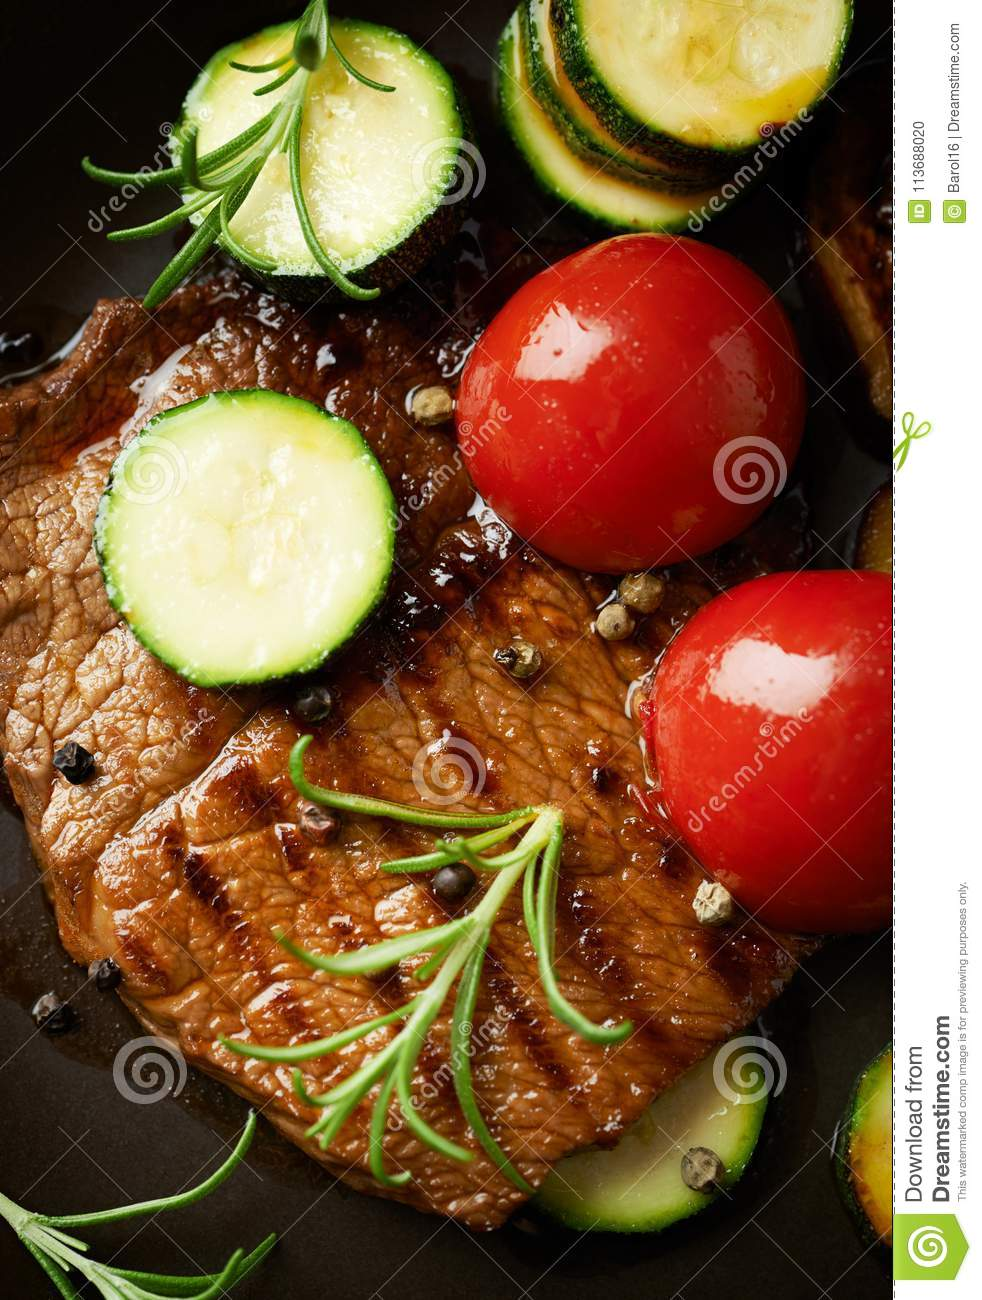 Grilled beef steak with vegetables . Top view.